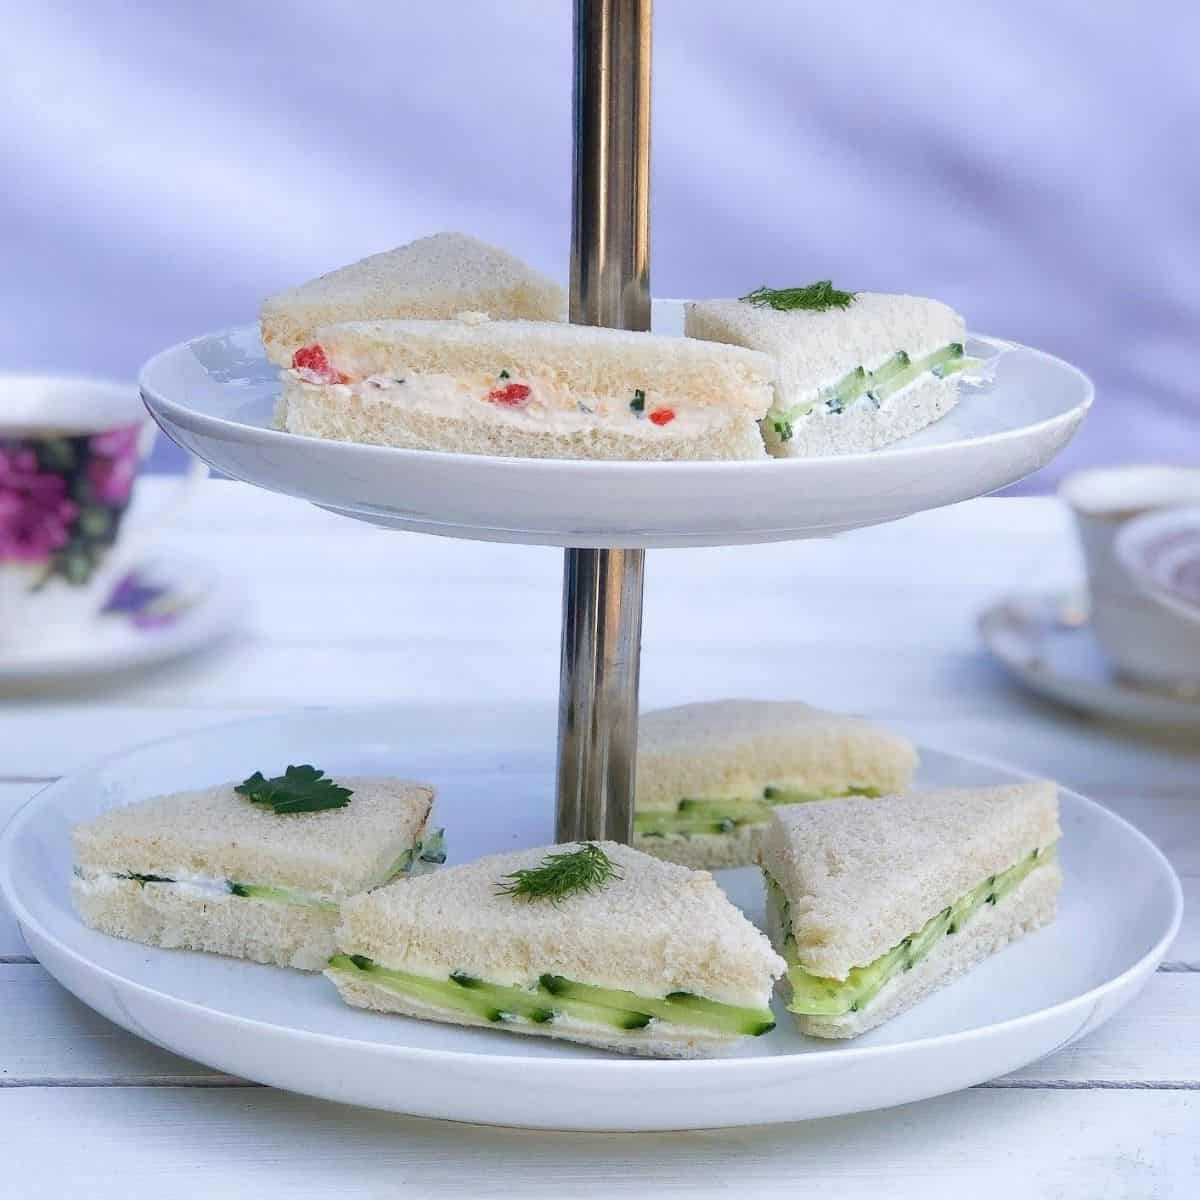 Tiered serving platter with English tea finger sandwiches.